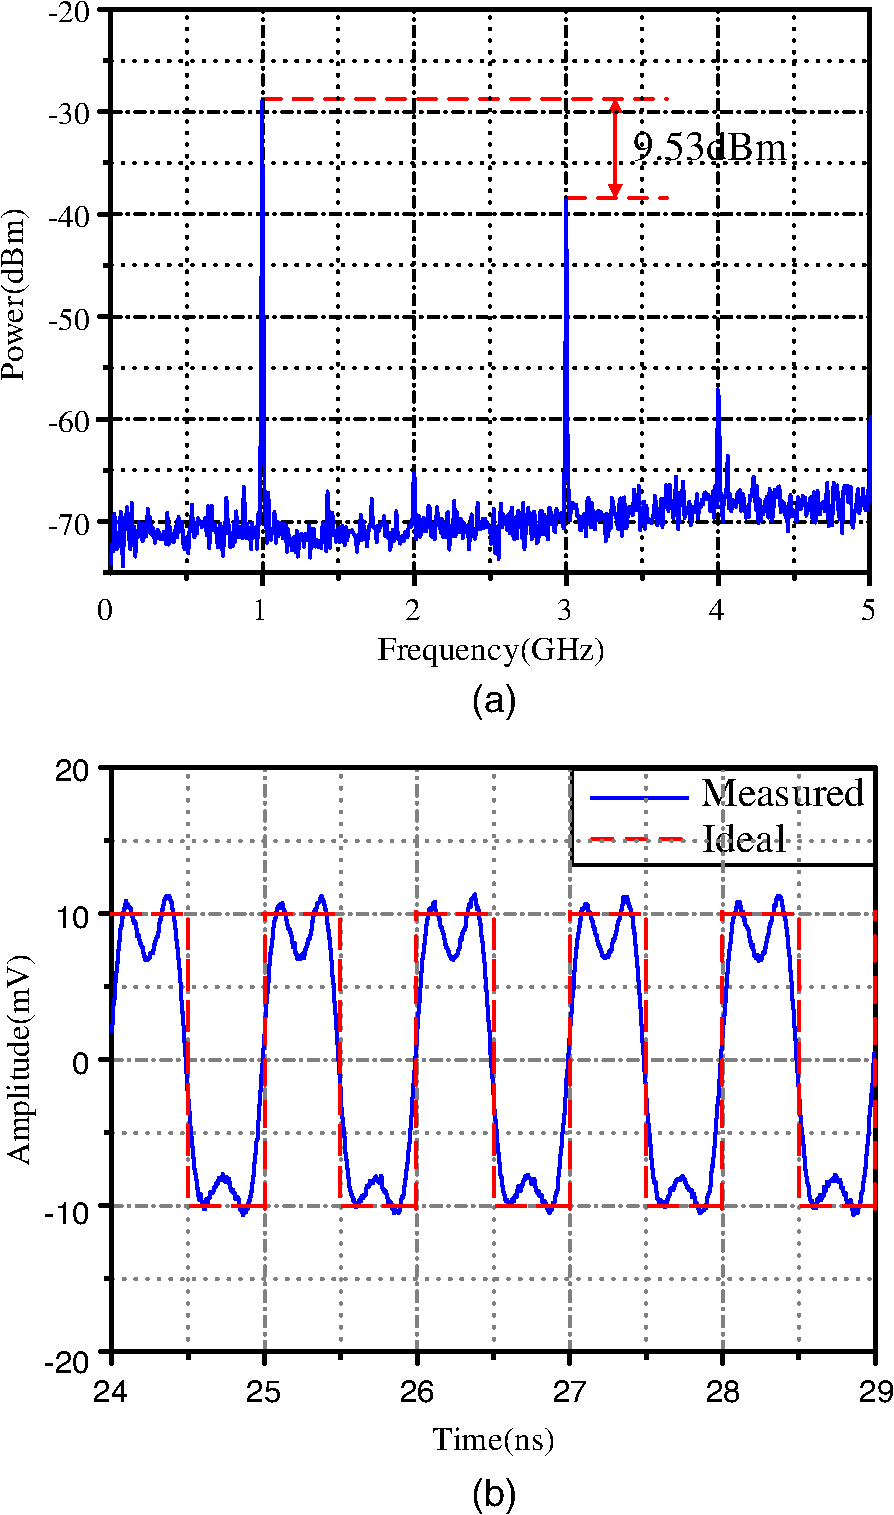 Photonic Assisted Square Waveform Generation Using A Dual Parallel Arbitrarydutycycle Squarewave Oscillator Circuit Diagram Electrical Spectrum Of The Experimentally Generated 1 Ghz And B Pulse Train